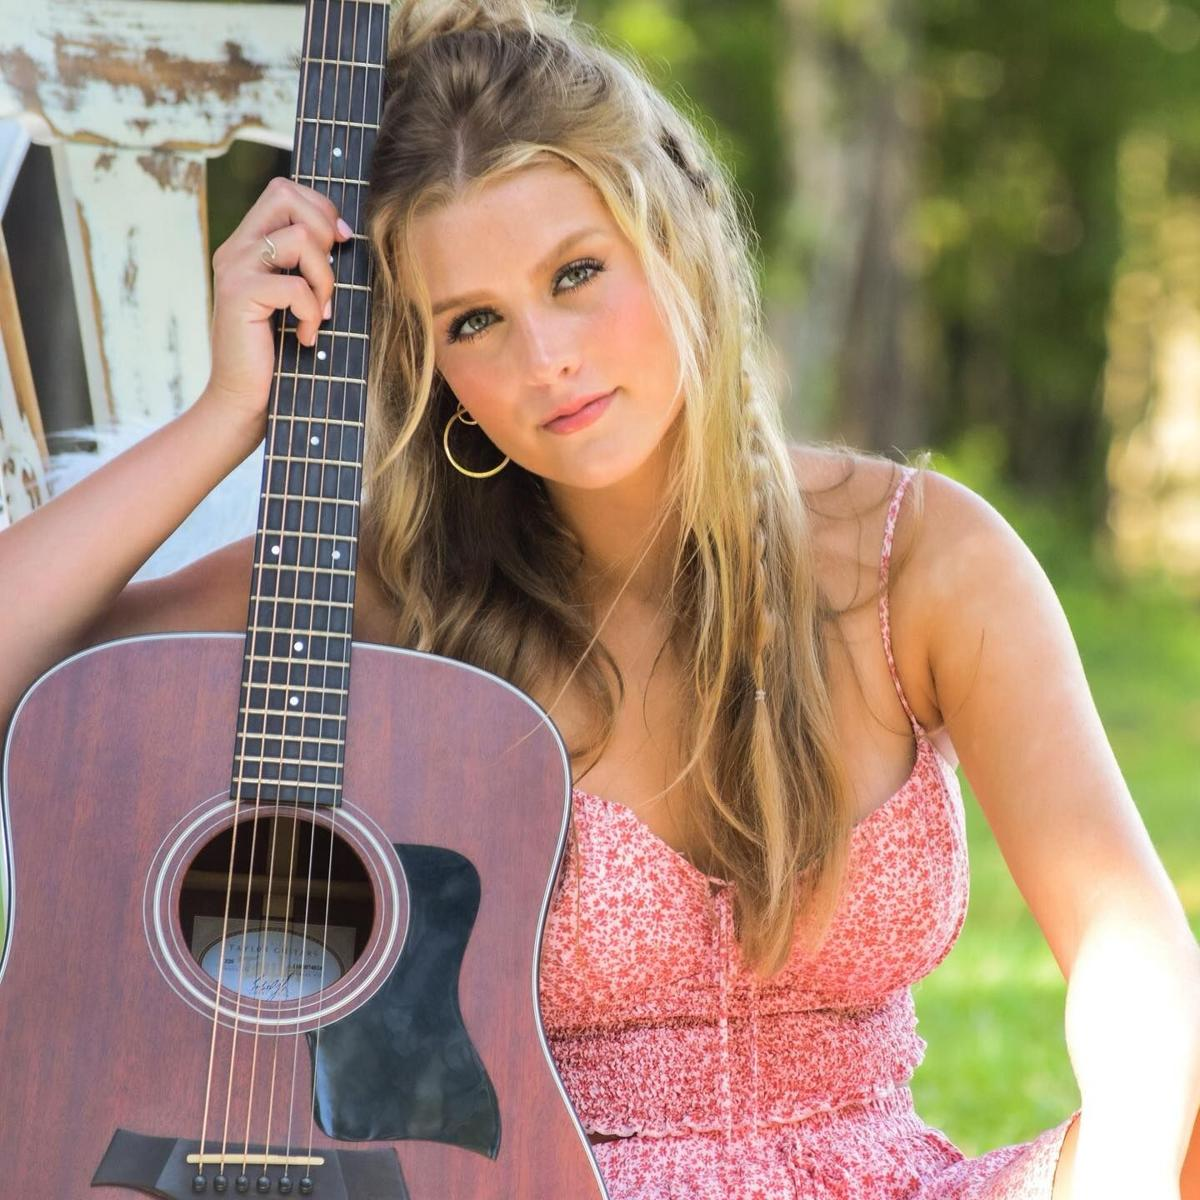 Faith Schueler finds success with country music fans